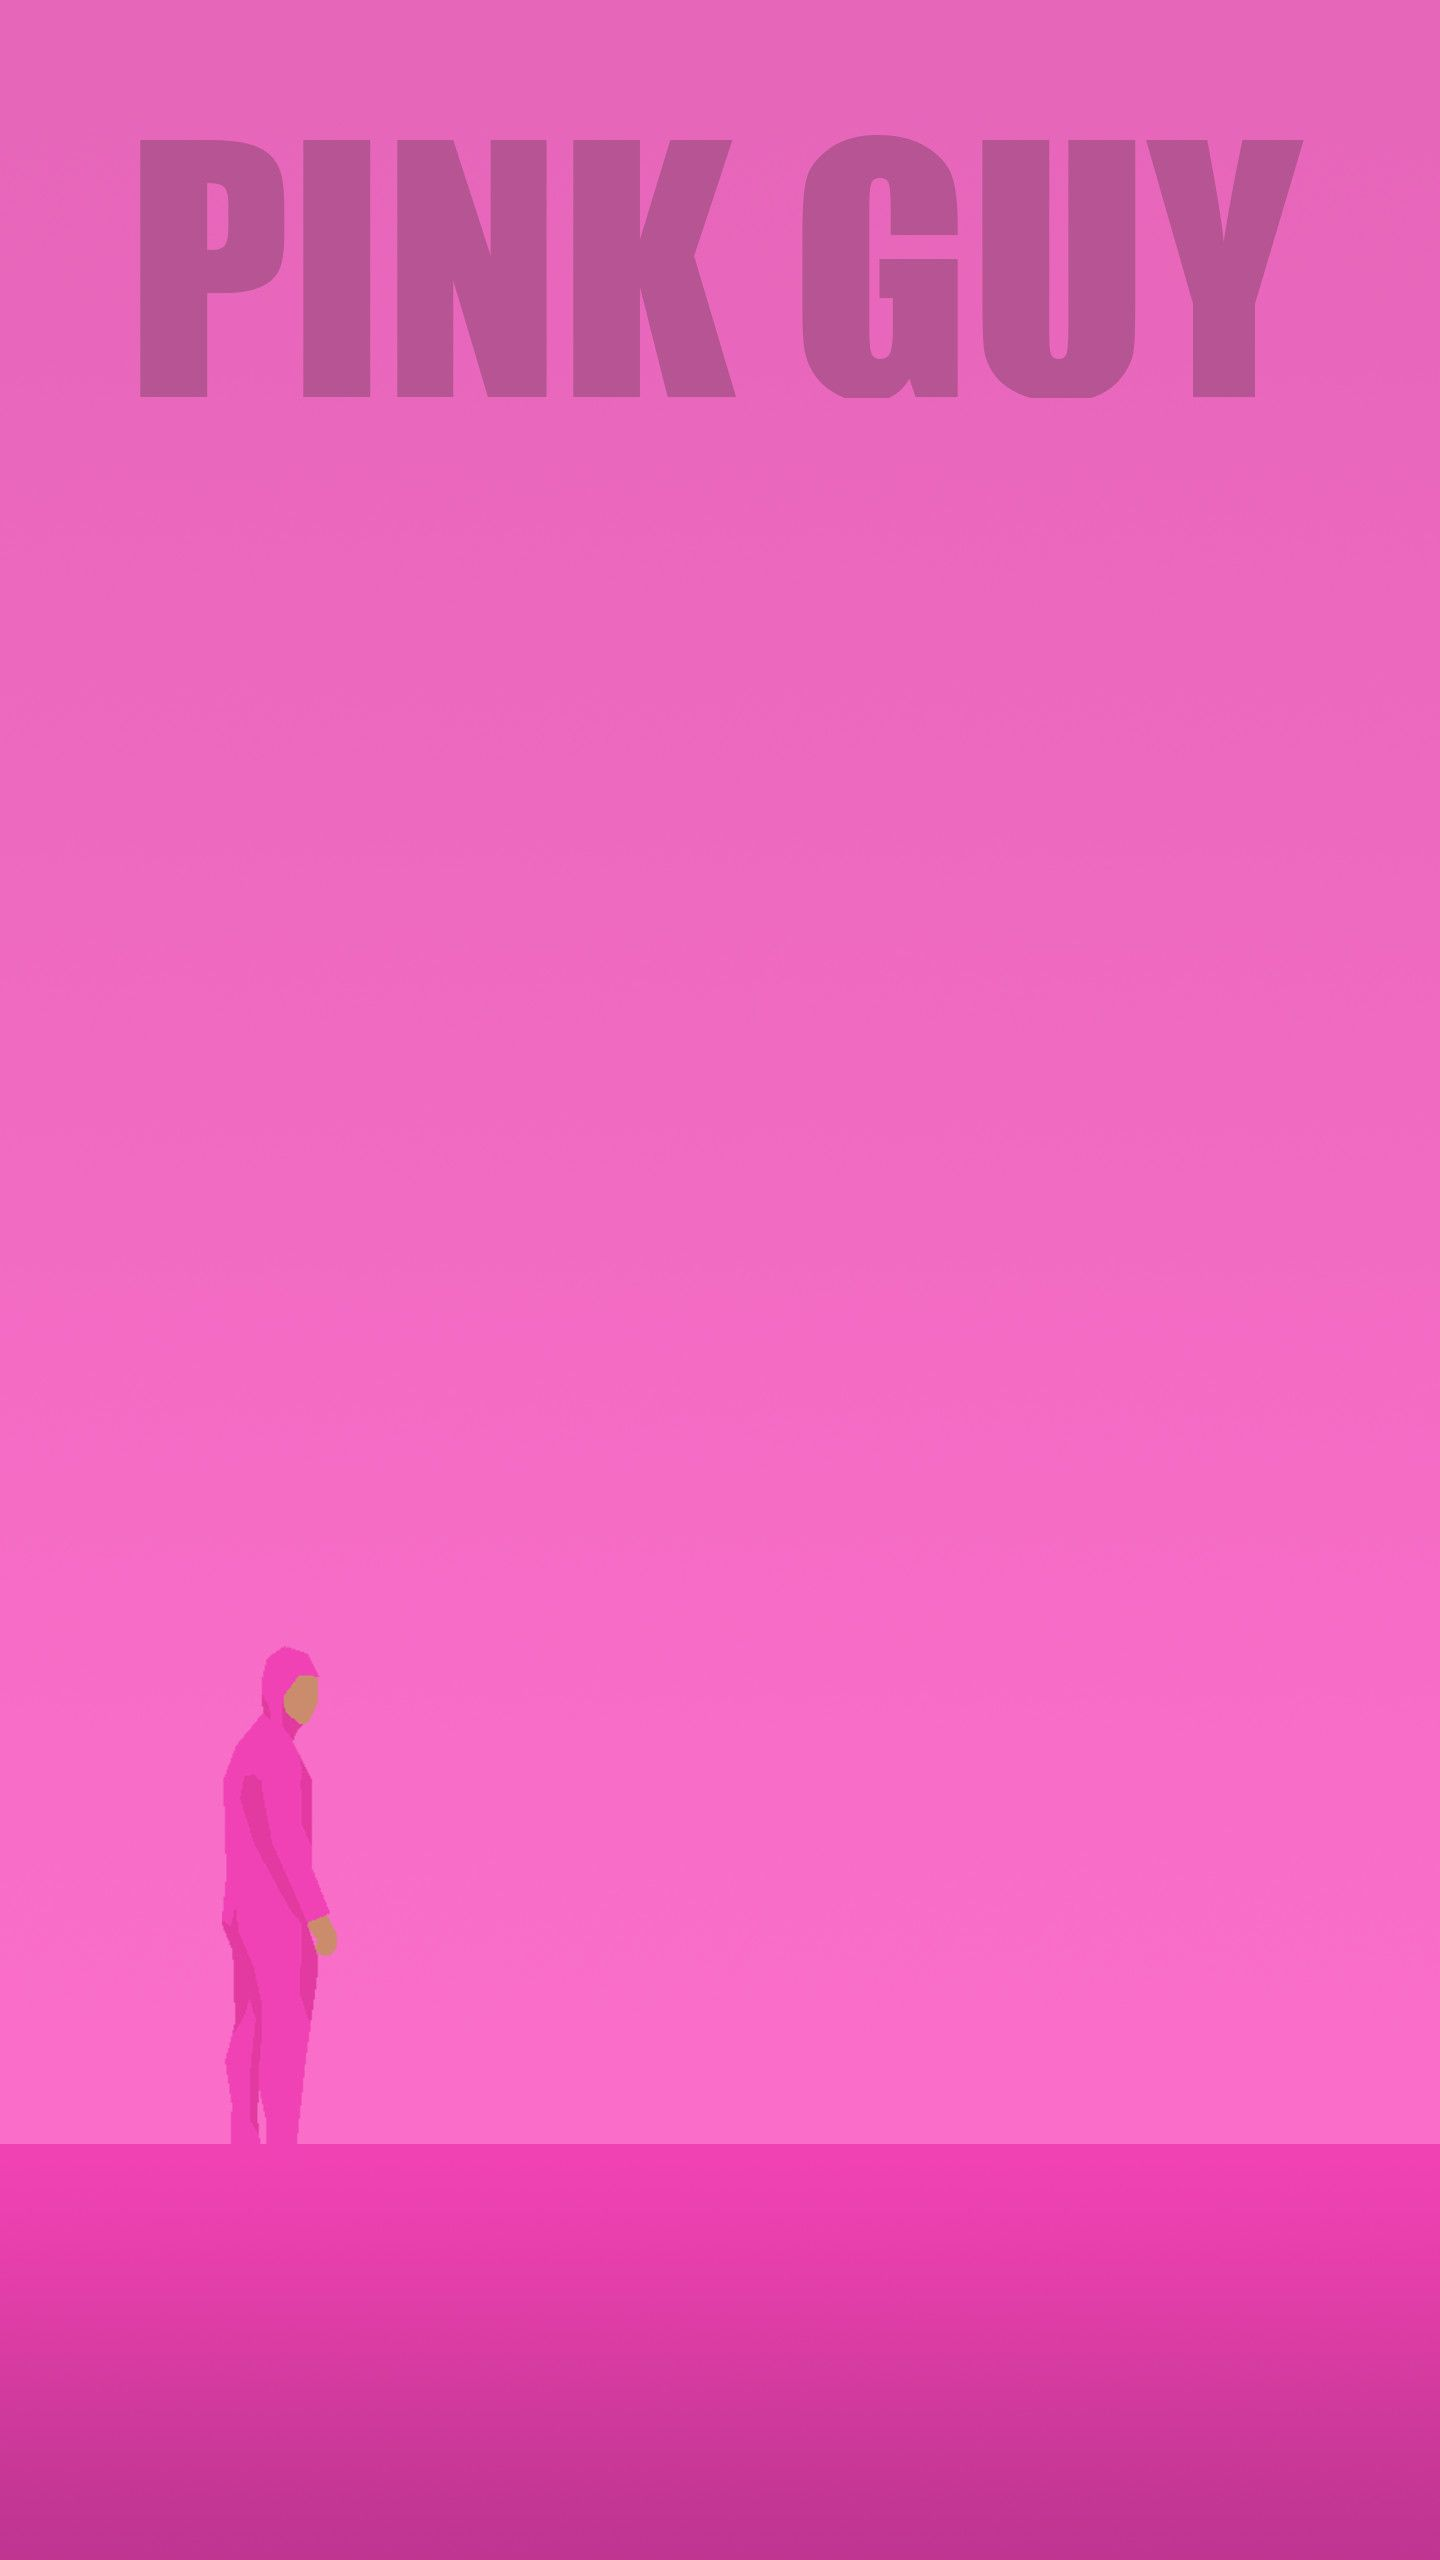 86 Pink Guy Wallpapers On Wallpaperplay Filthy Frank Wallpaper Wallpaper Cool Anime Guys